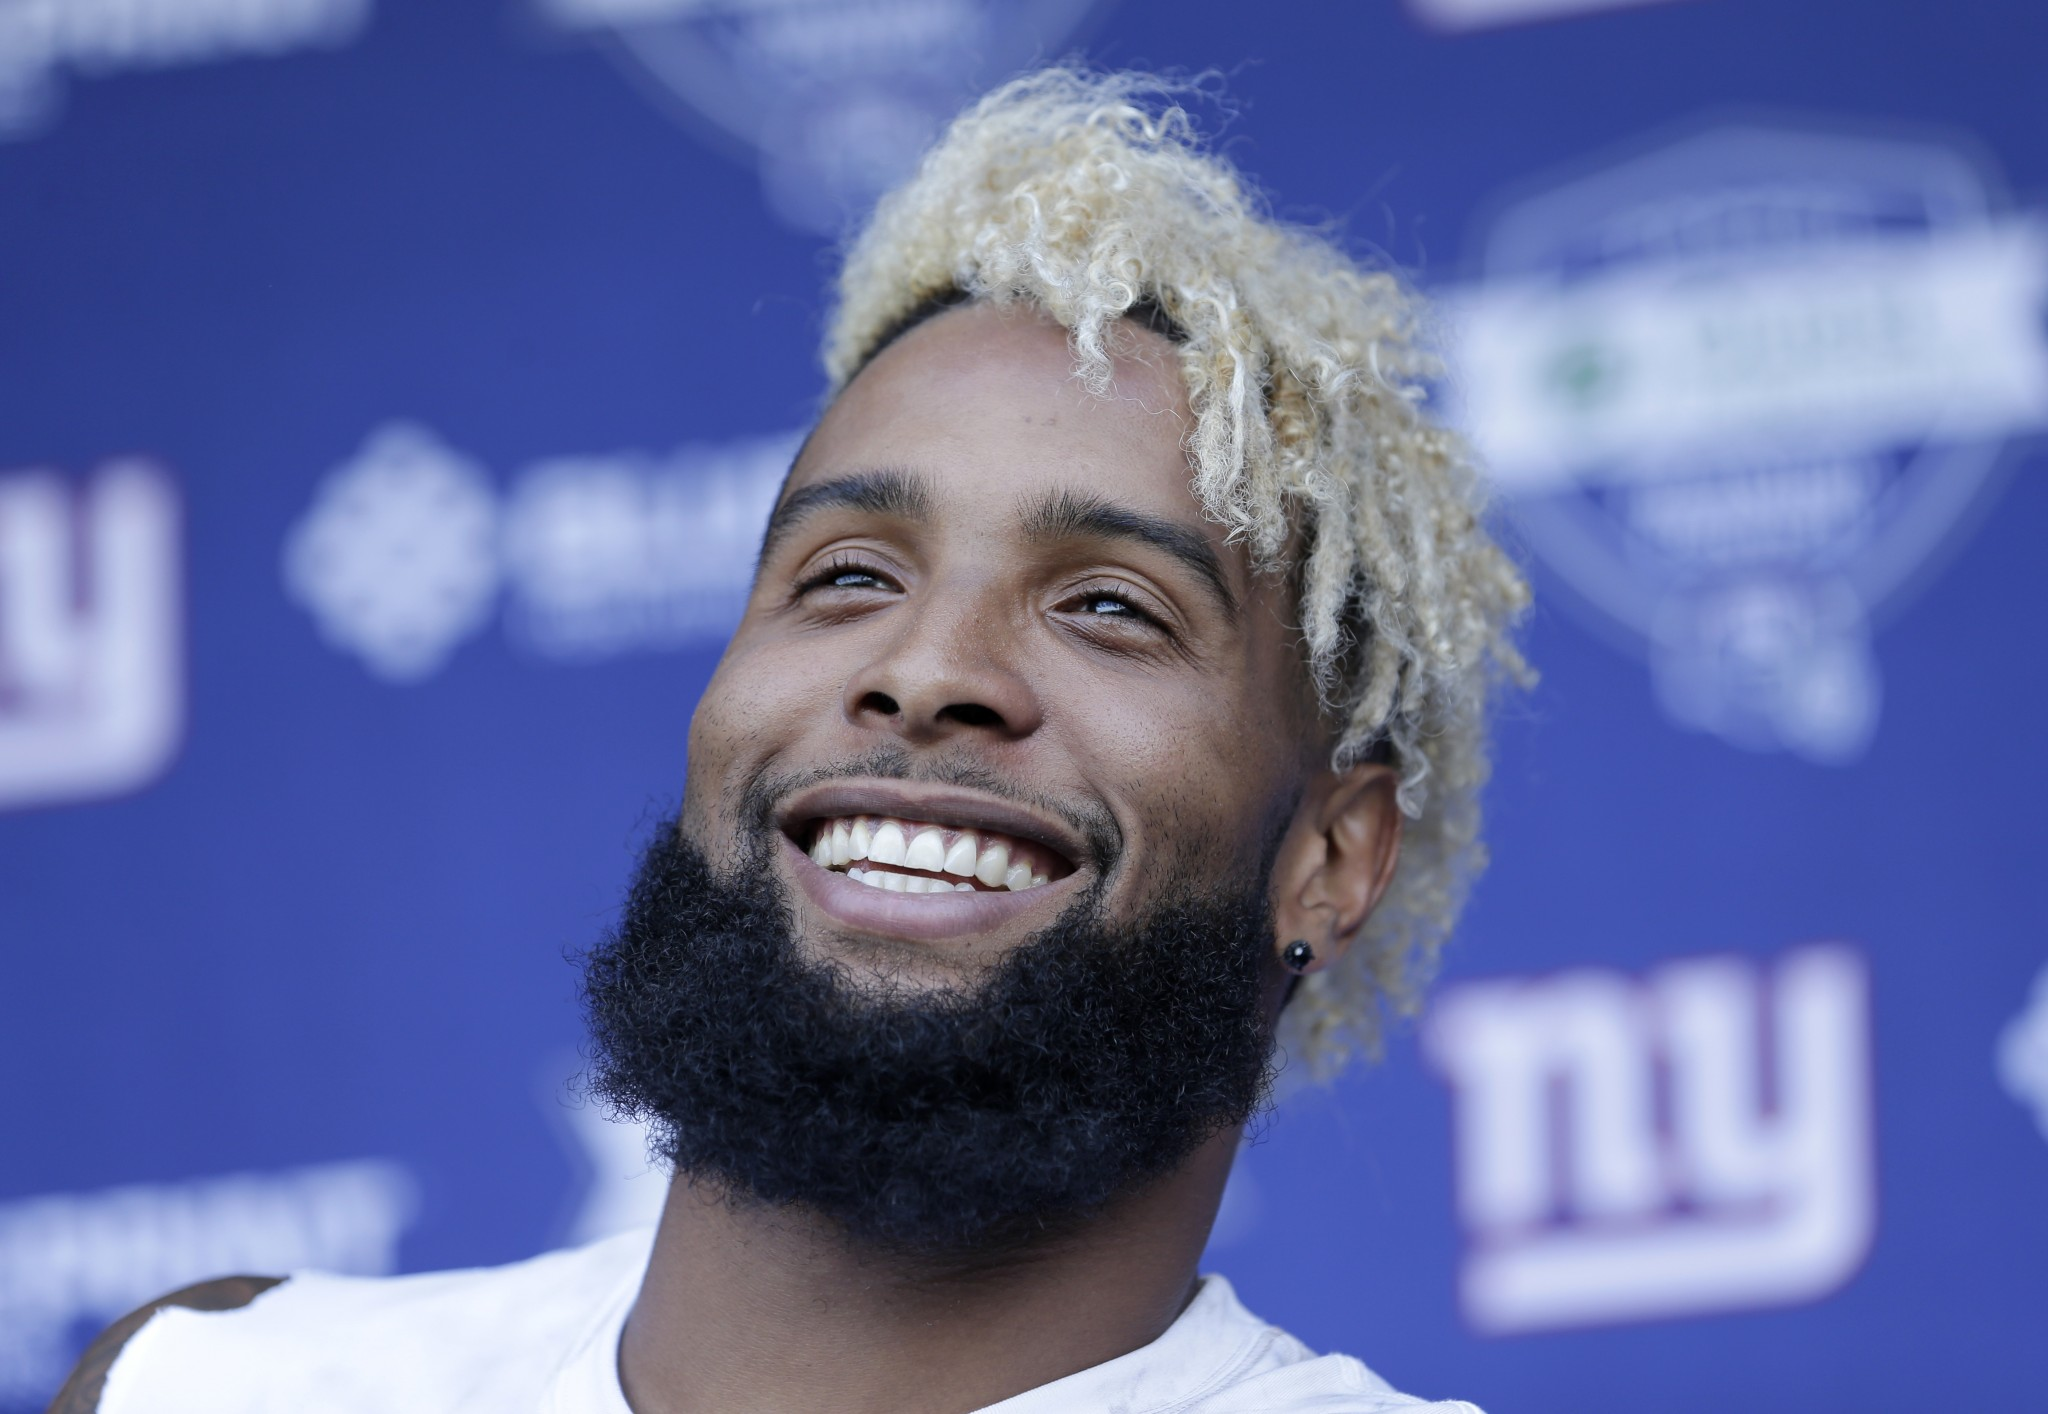 All smiles: Giants WR Odell Beckham Jr. made an ailing young fan's wish come true. (AP)